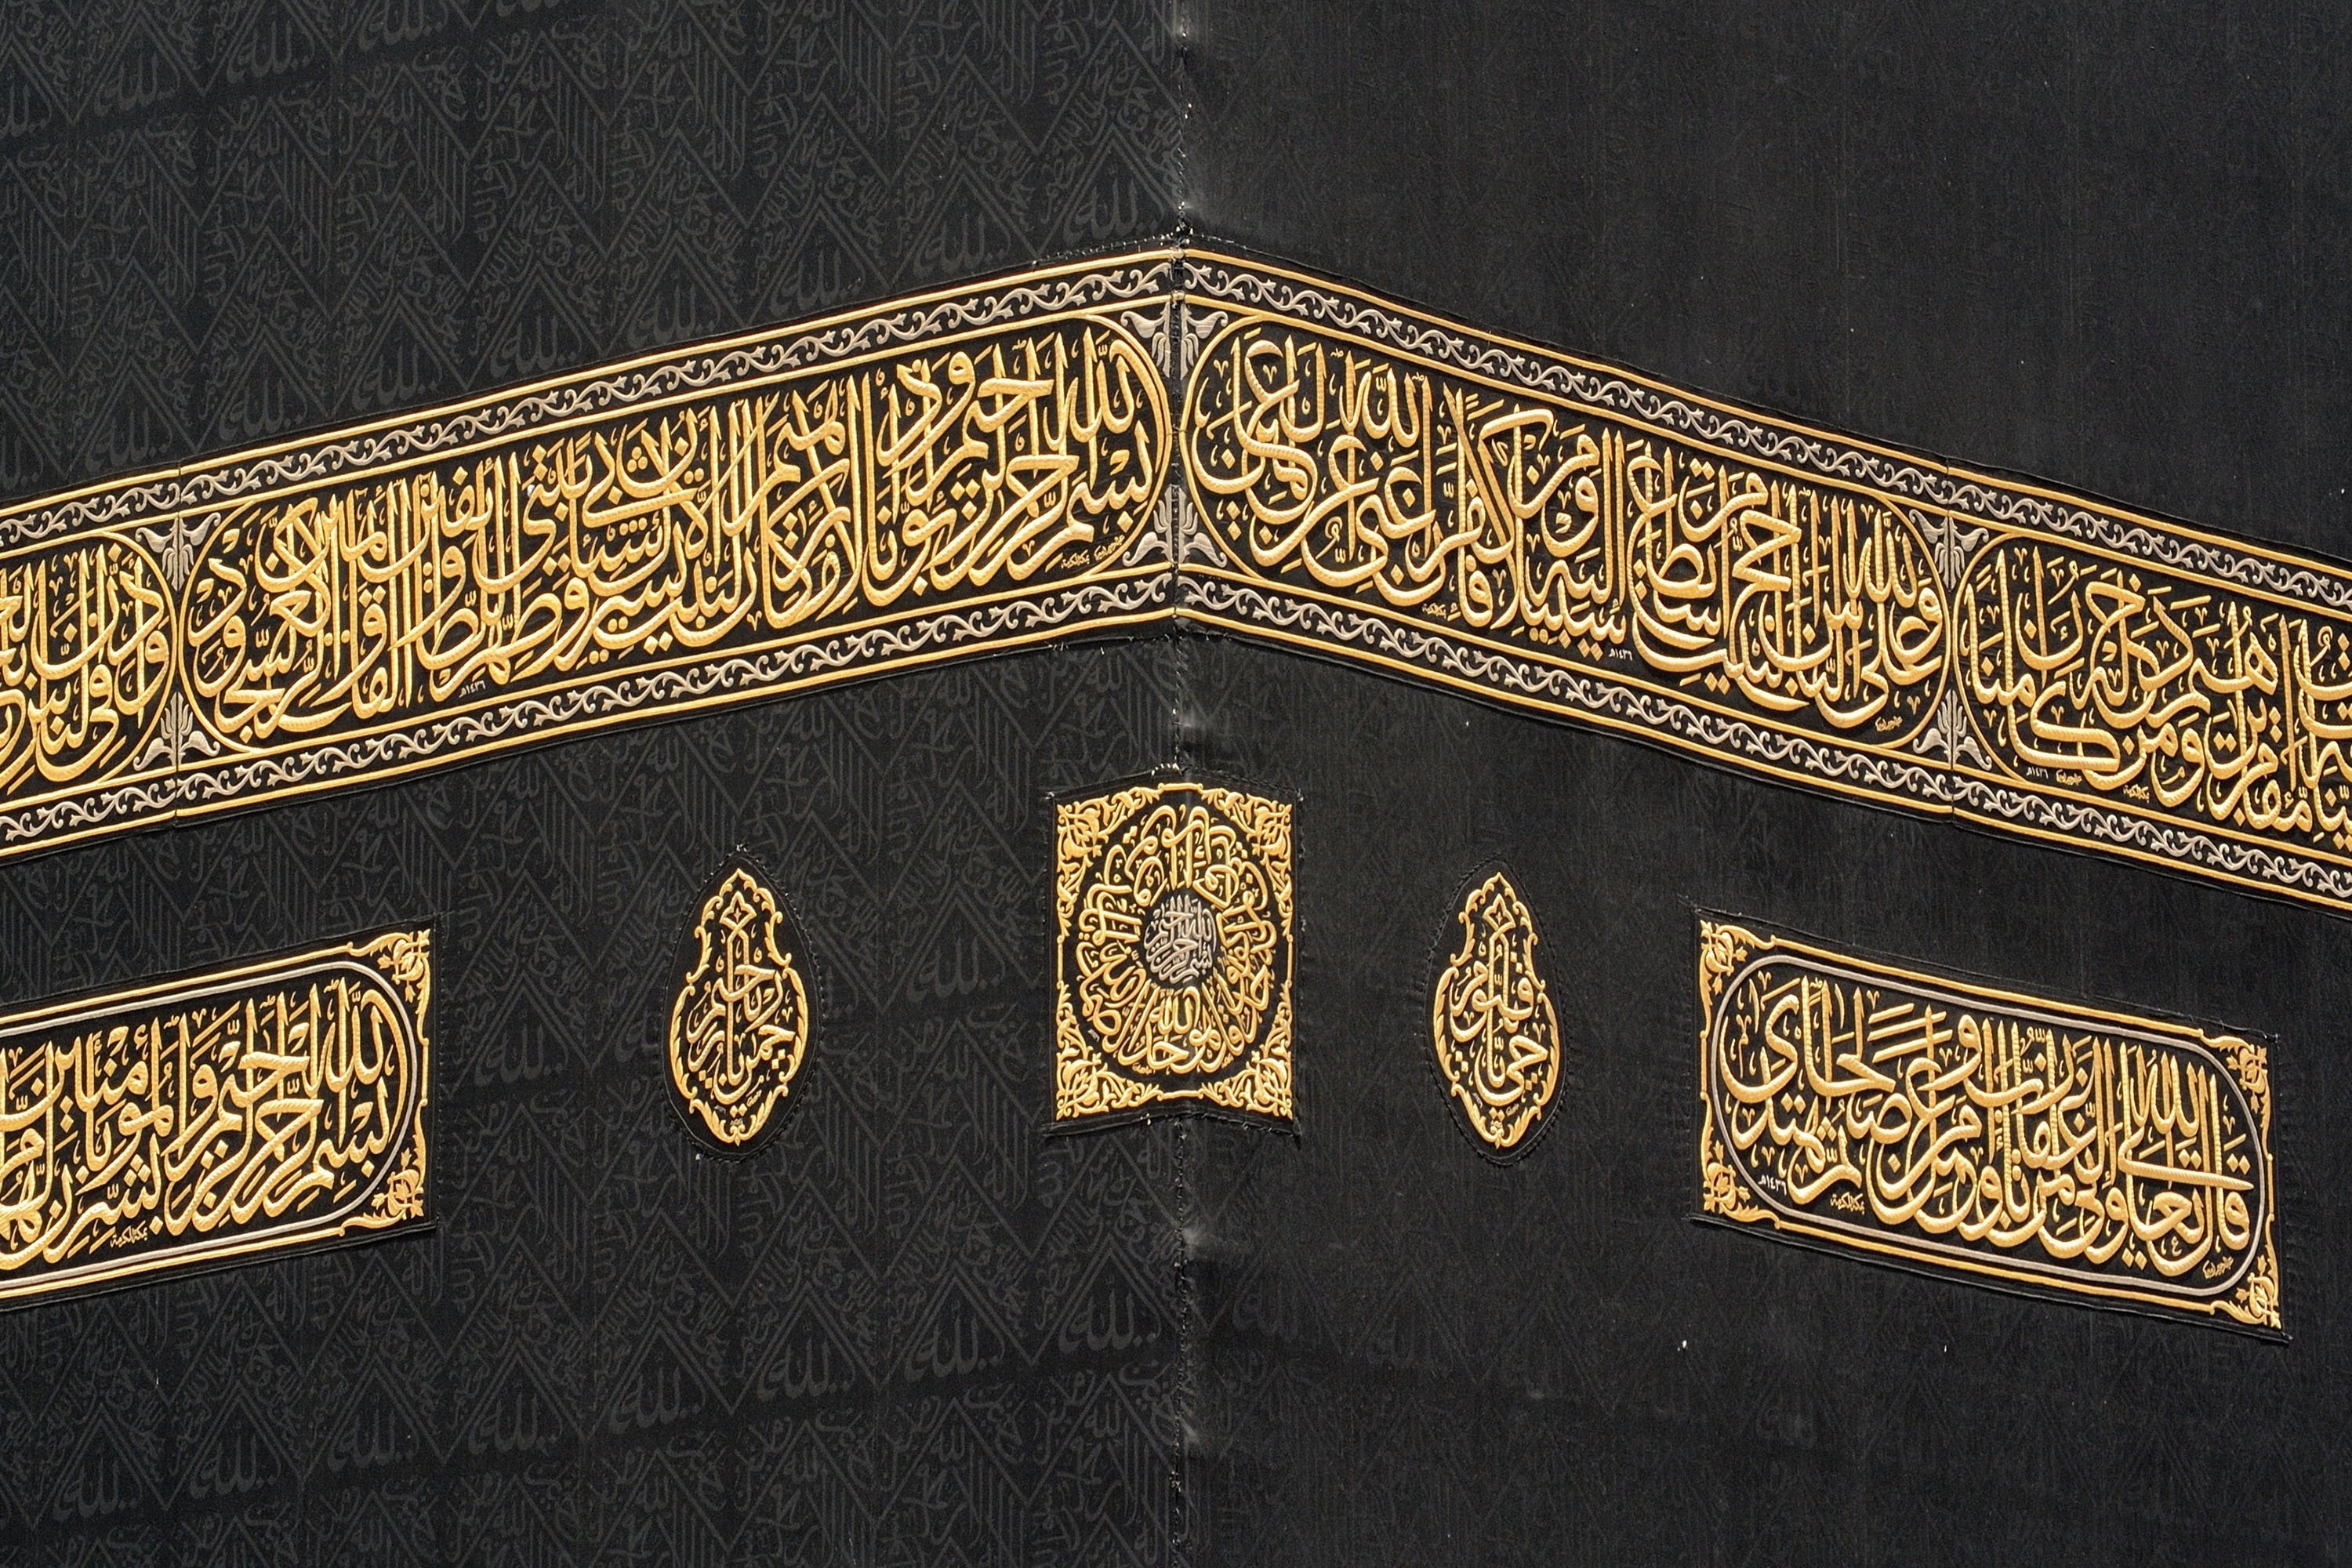 The detail of the kiswah, the cloth that covers the Kaaba, can be seenat Masjid al-Haram in Mecca, Saudi Arabia. (Shutterstock Photo)